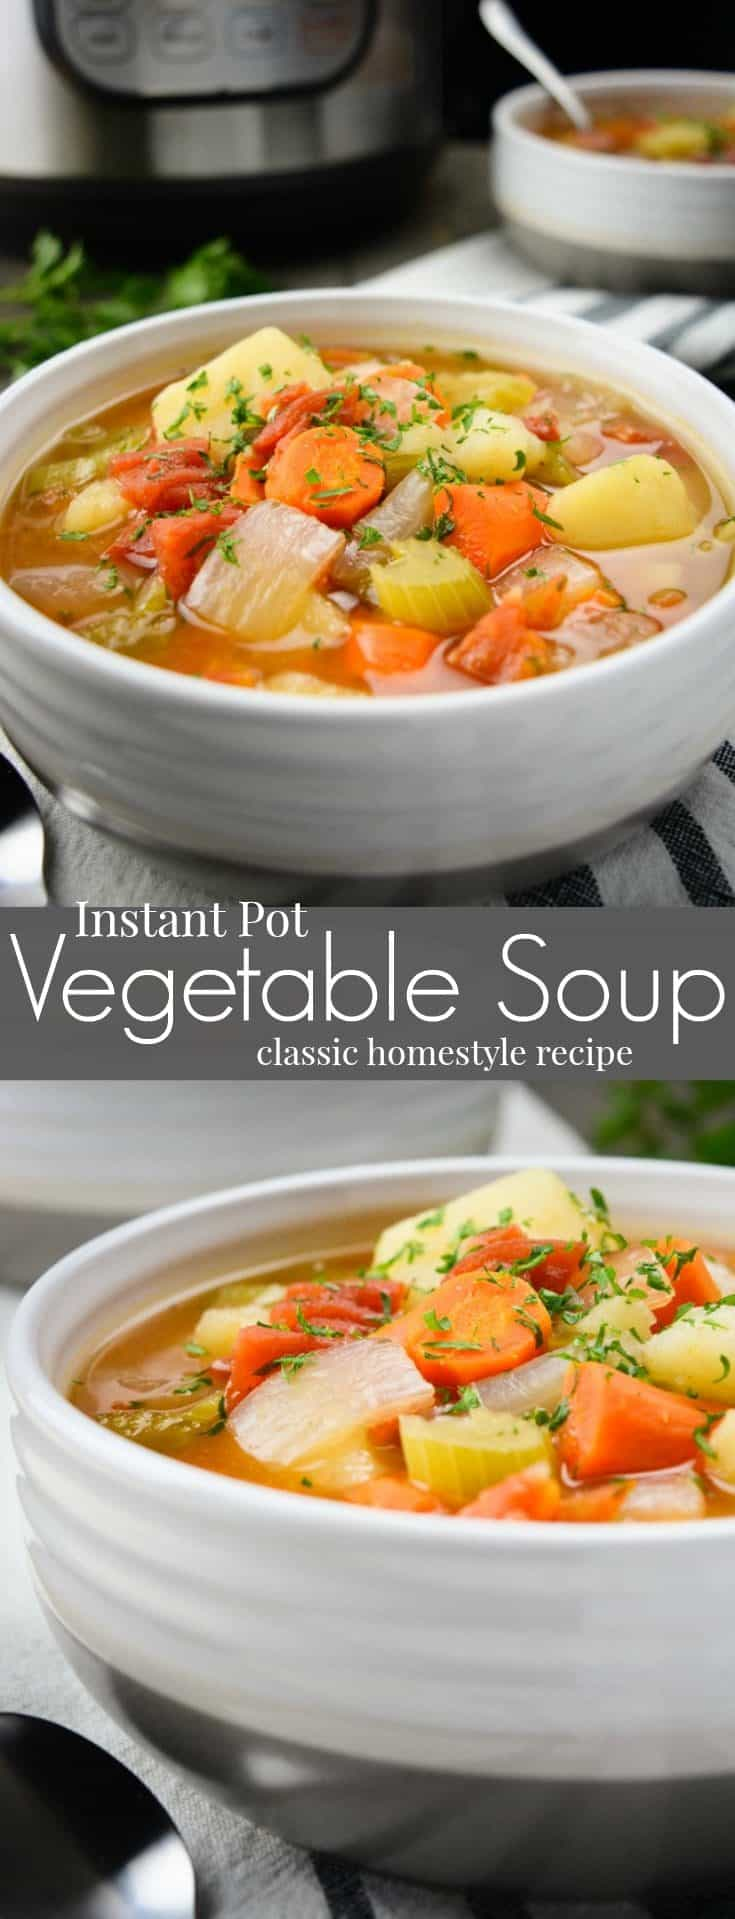 Instant Pot Vegetable Soup is a classic homestyle recipe great for cold winter nights. Plus it's quick to bring together making it an easy weeknight dinner. This healthy & flavorful chunky vegetable soup is vegan, vegetarian, gluten free and allergy friendly! #vegan #veganrecipes #vegansoup #instantpotsoup #instantpotrecipe #vegetablesoup #instantpot #healthy #dairyfree